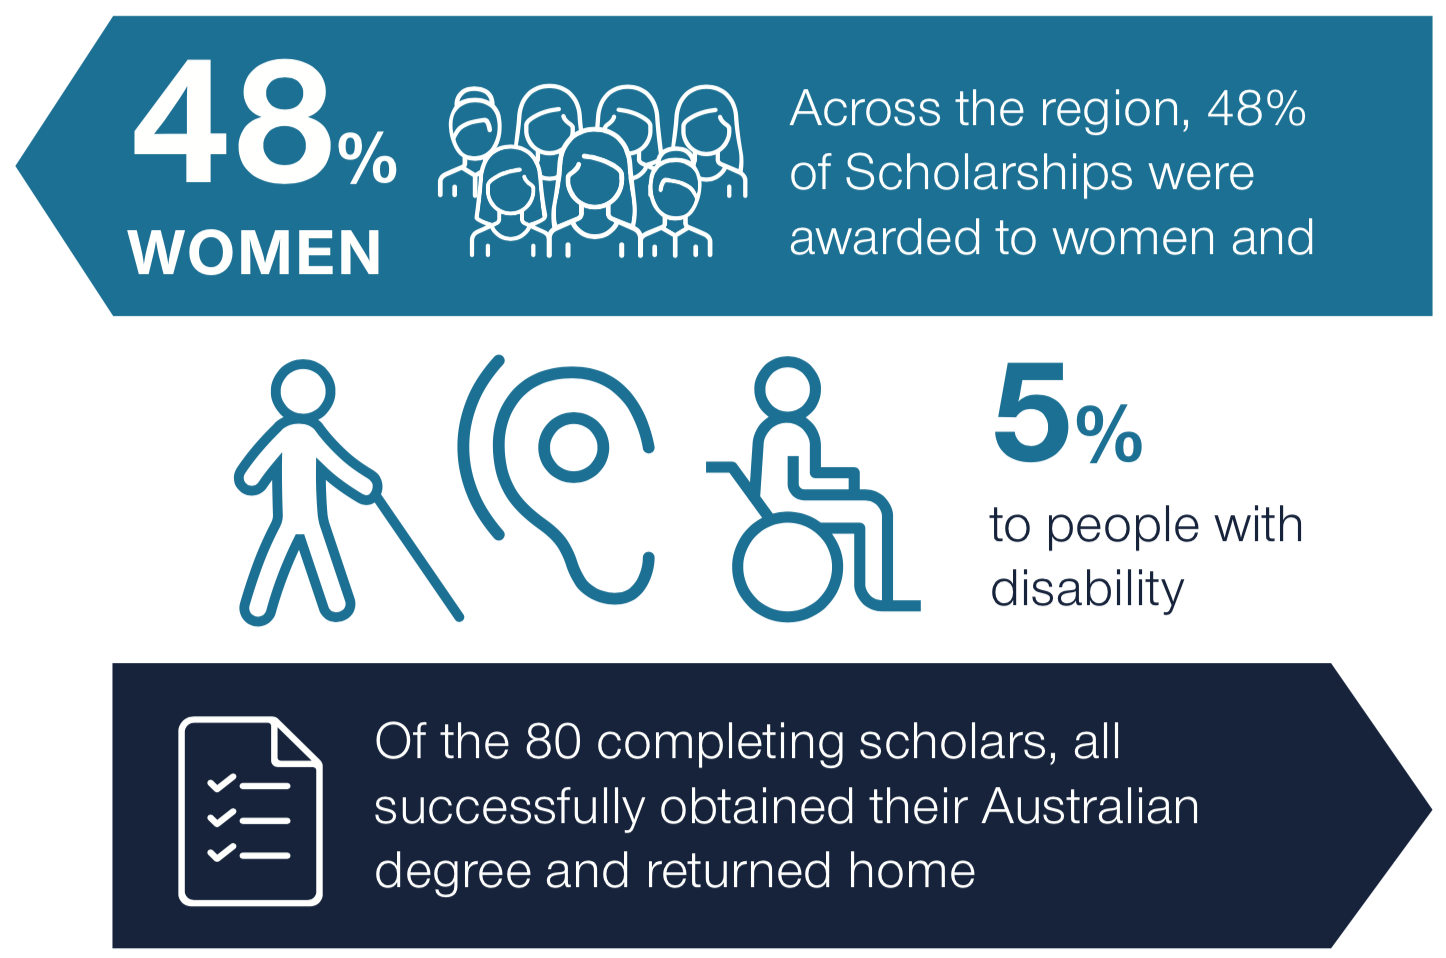 48% of scholarships were awarded to women, 5% to people with disability. Of the 80 completing scholars, all successfully obtained their Australian degree and returned home.